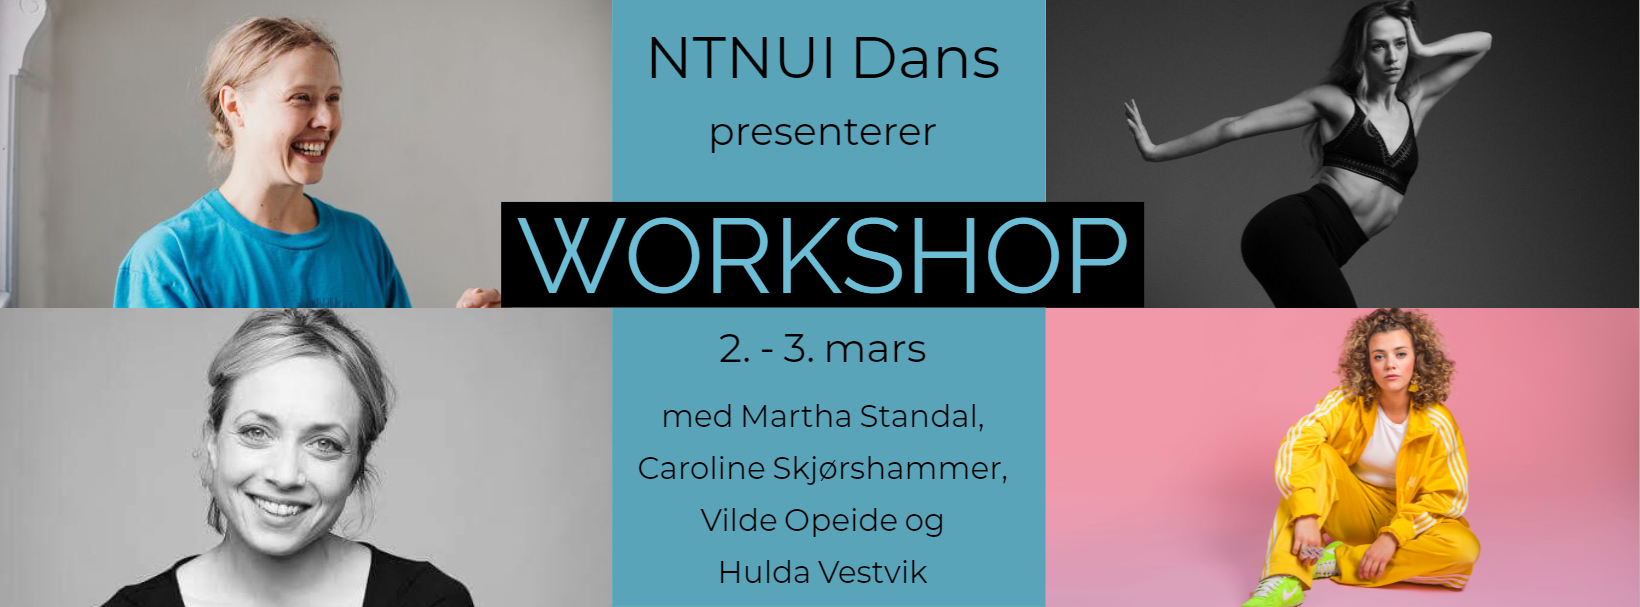 NTNUI Dans presenterer: Workshop våren 2019